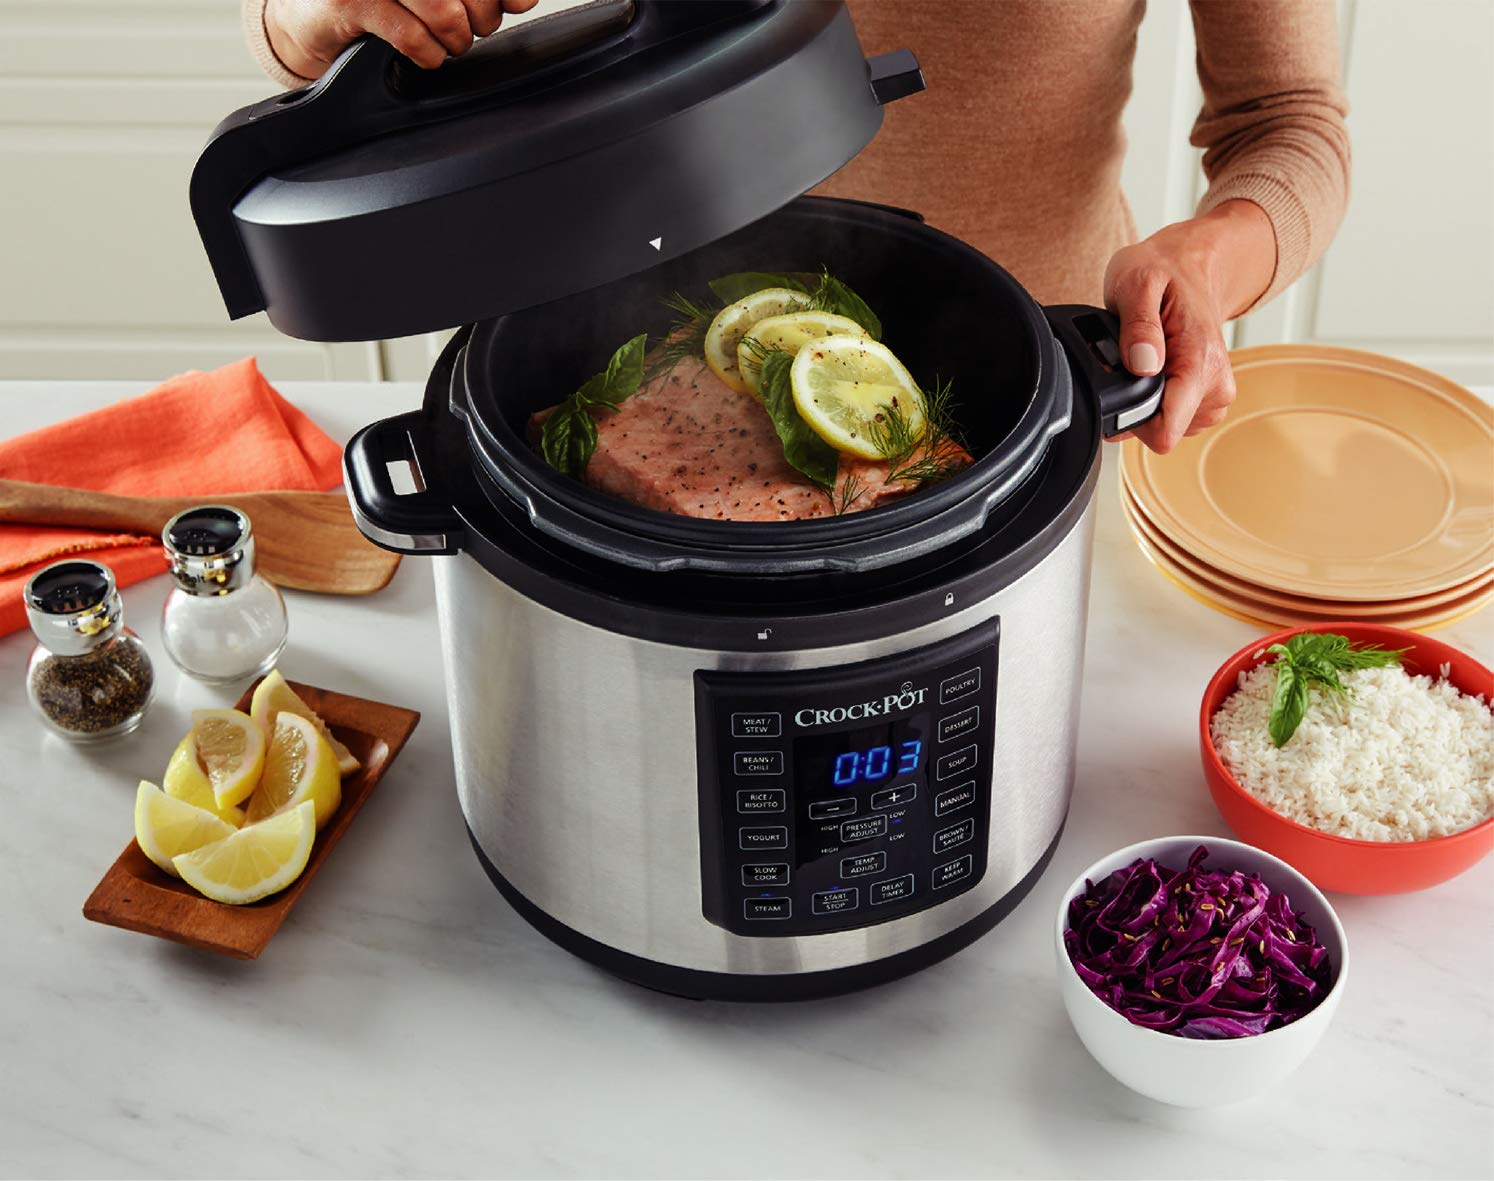 Crock-Pot Express Pressure Cooker CSC051, 12-in-1 Programmable Multi-Cooker, Slow Cooker, Steamer and Saute, 5.6 Litre…